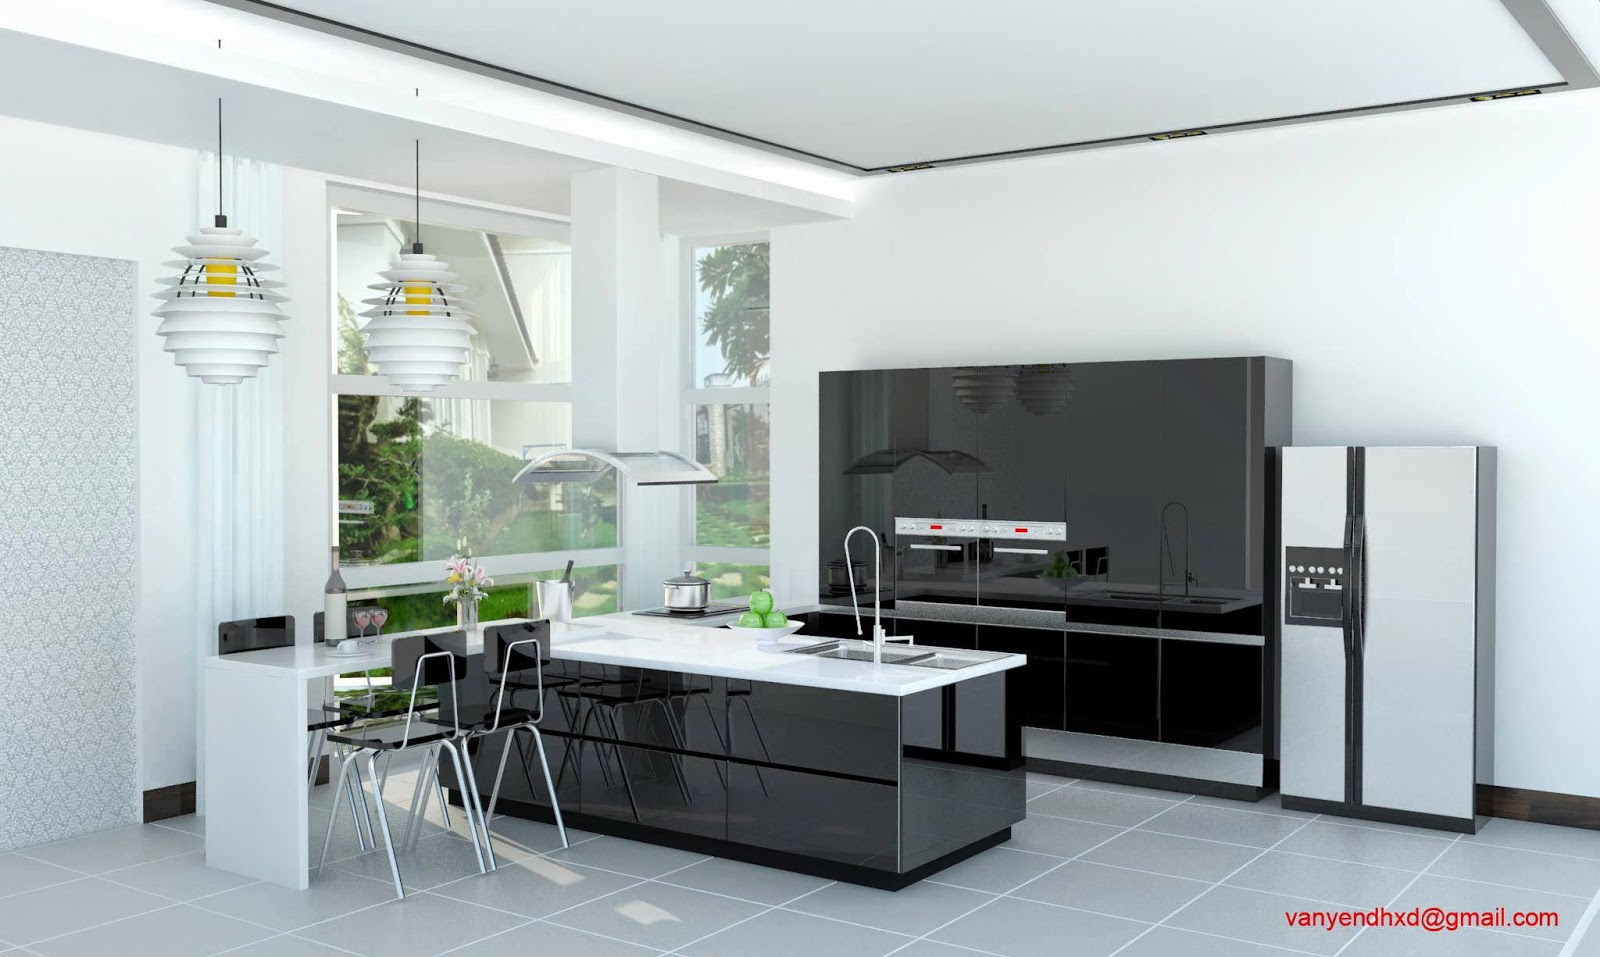 Modern Kitchen 3d Model sketchup texture: free sketchup 3d model-vray setting-kitchen #6